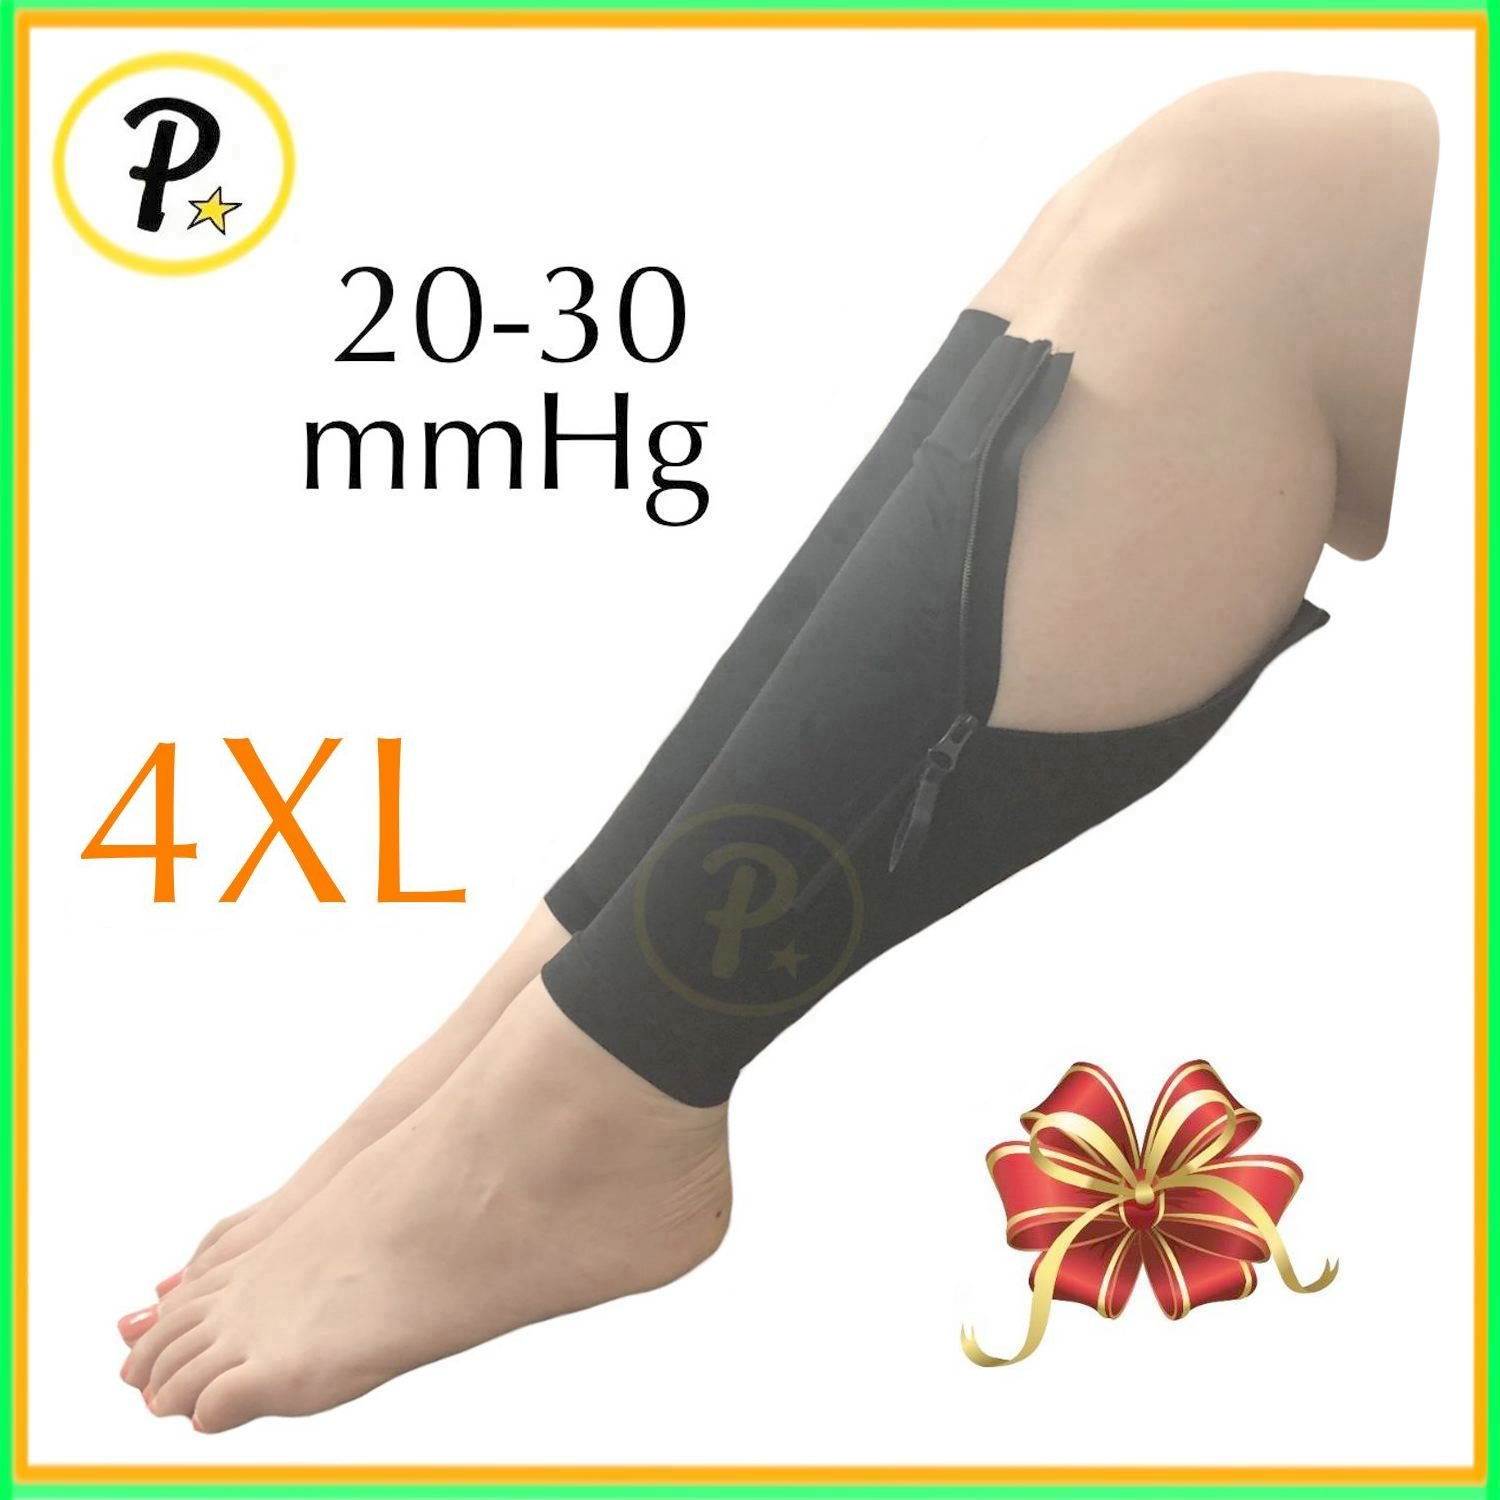 Presadee New Big Tall Calf Sleeve with Zipper 20-30 mmHg Compression Extra Wide Shin Energize Leg Swelling Circulation (Black, 4XL)